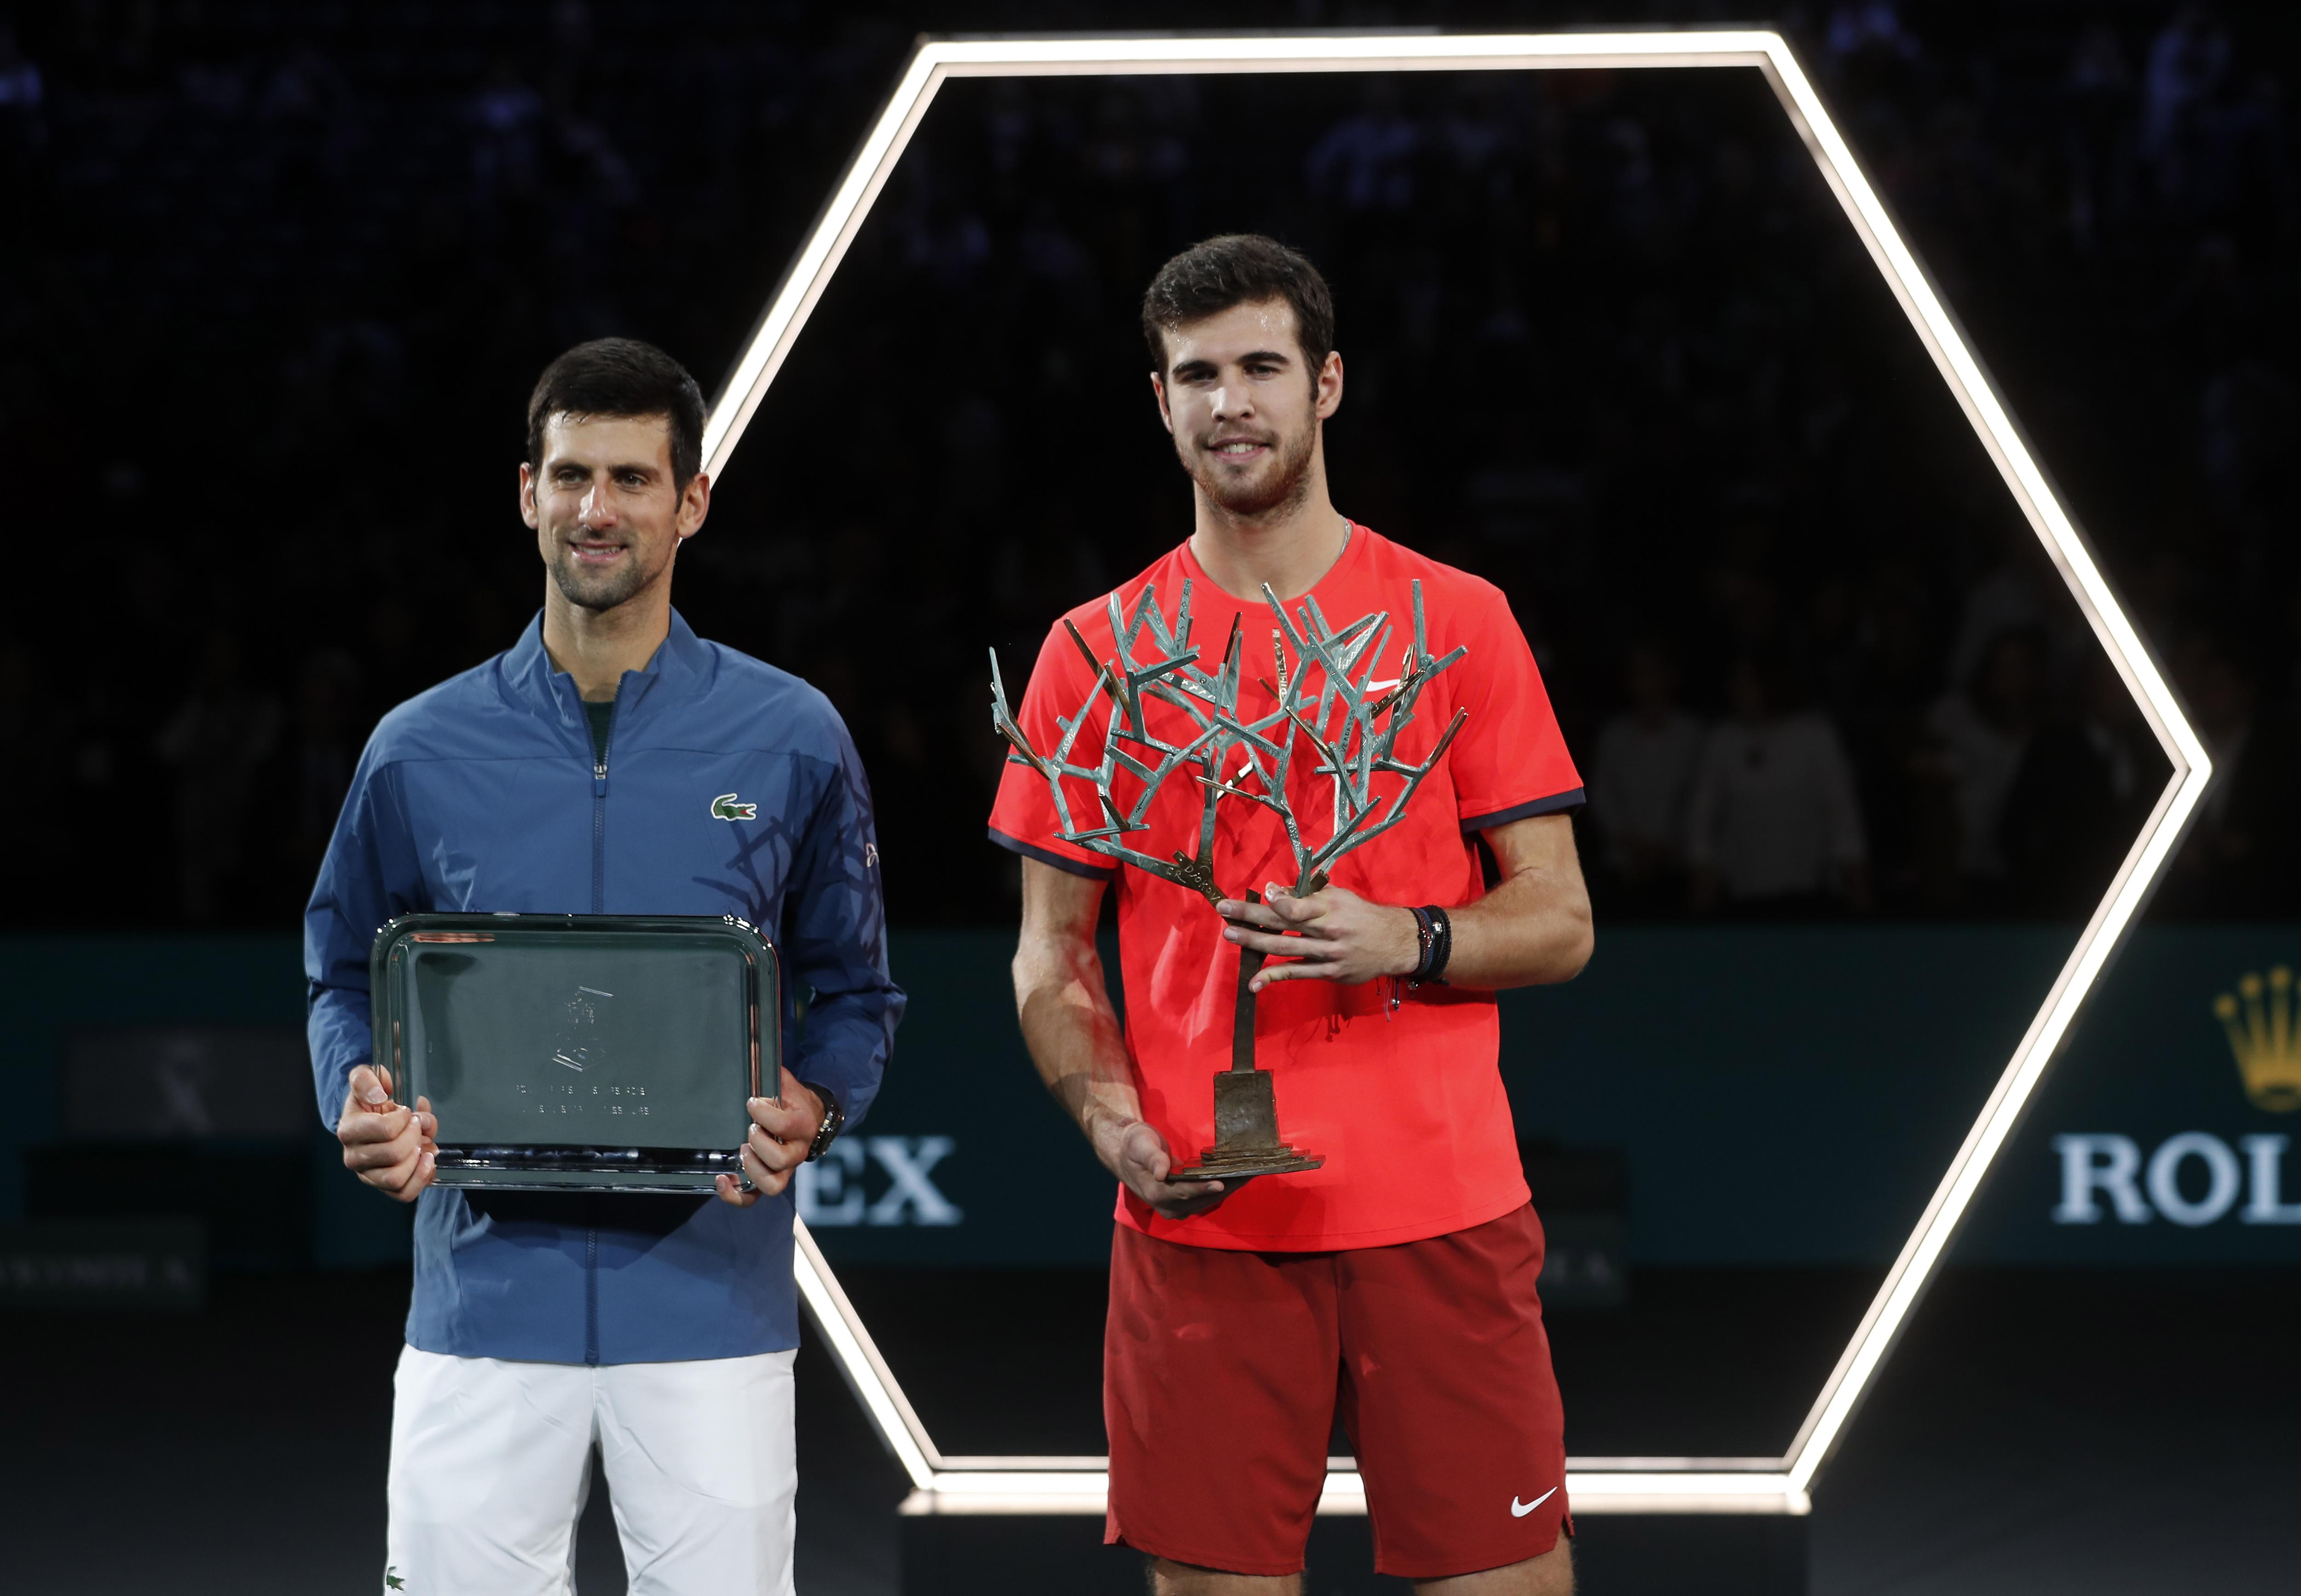 Djokovic was ill coming into the match and Karen Khachanov, right, took full advantage